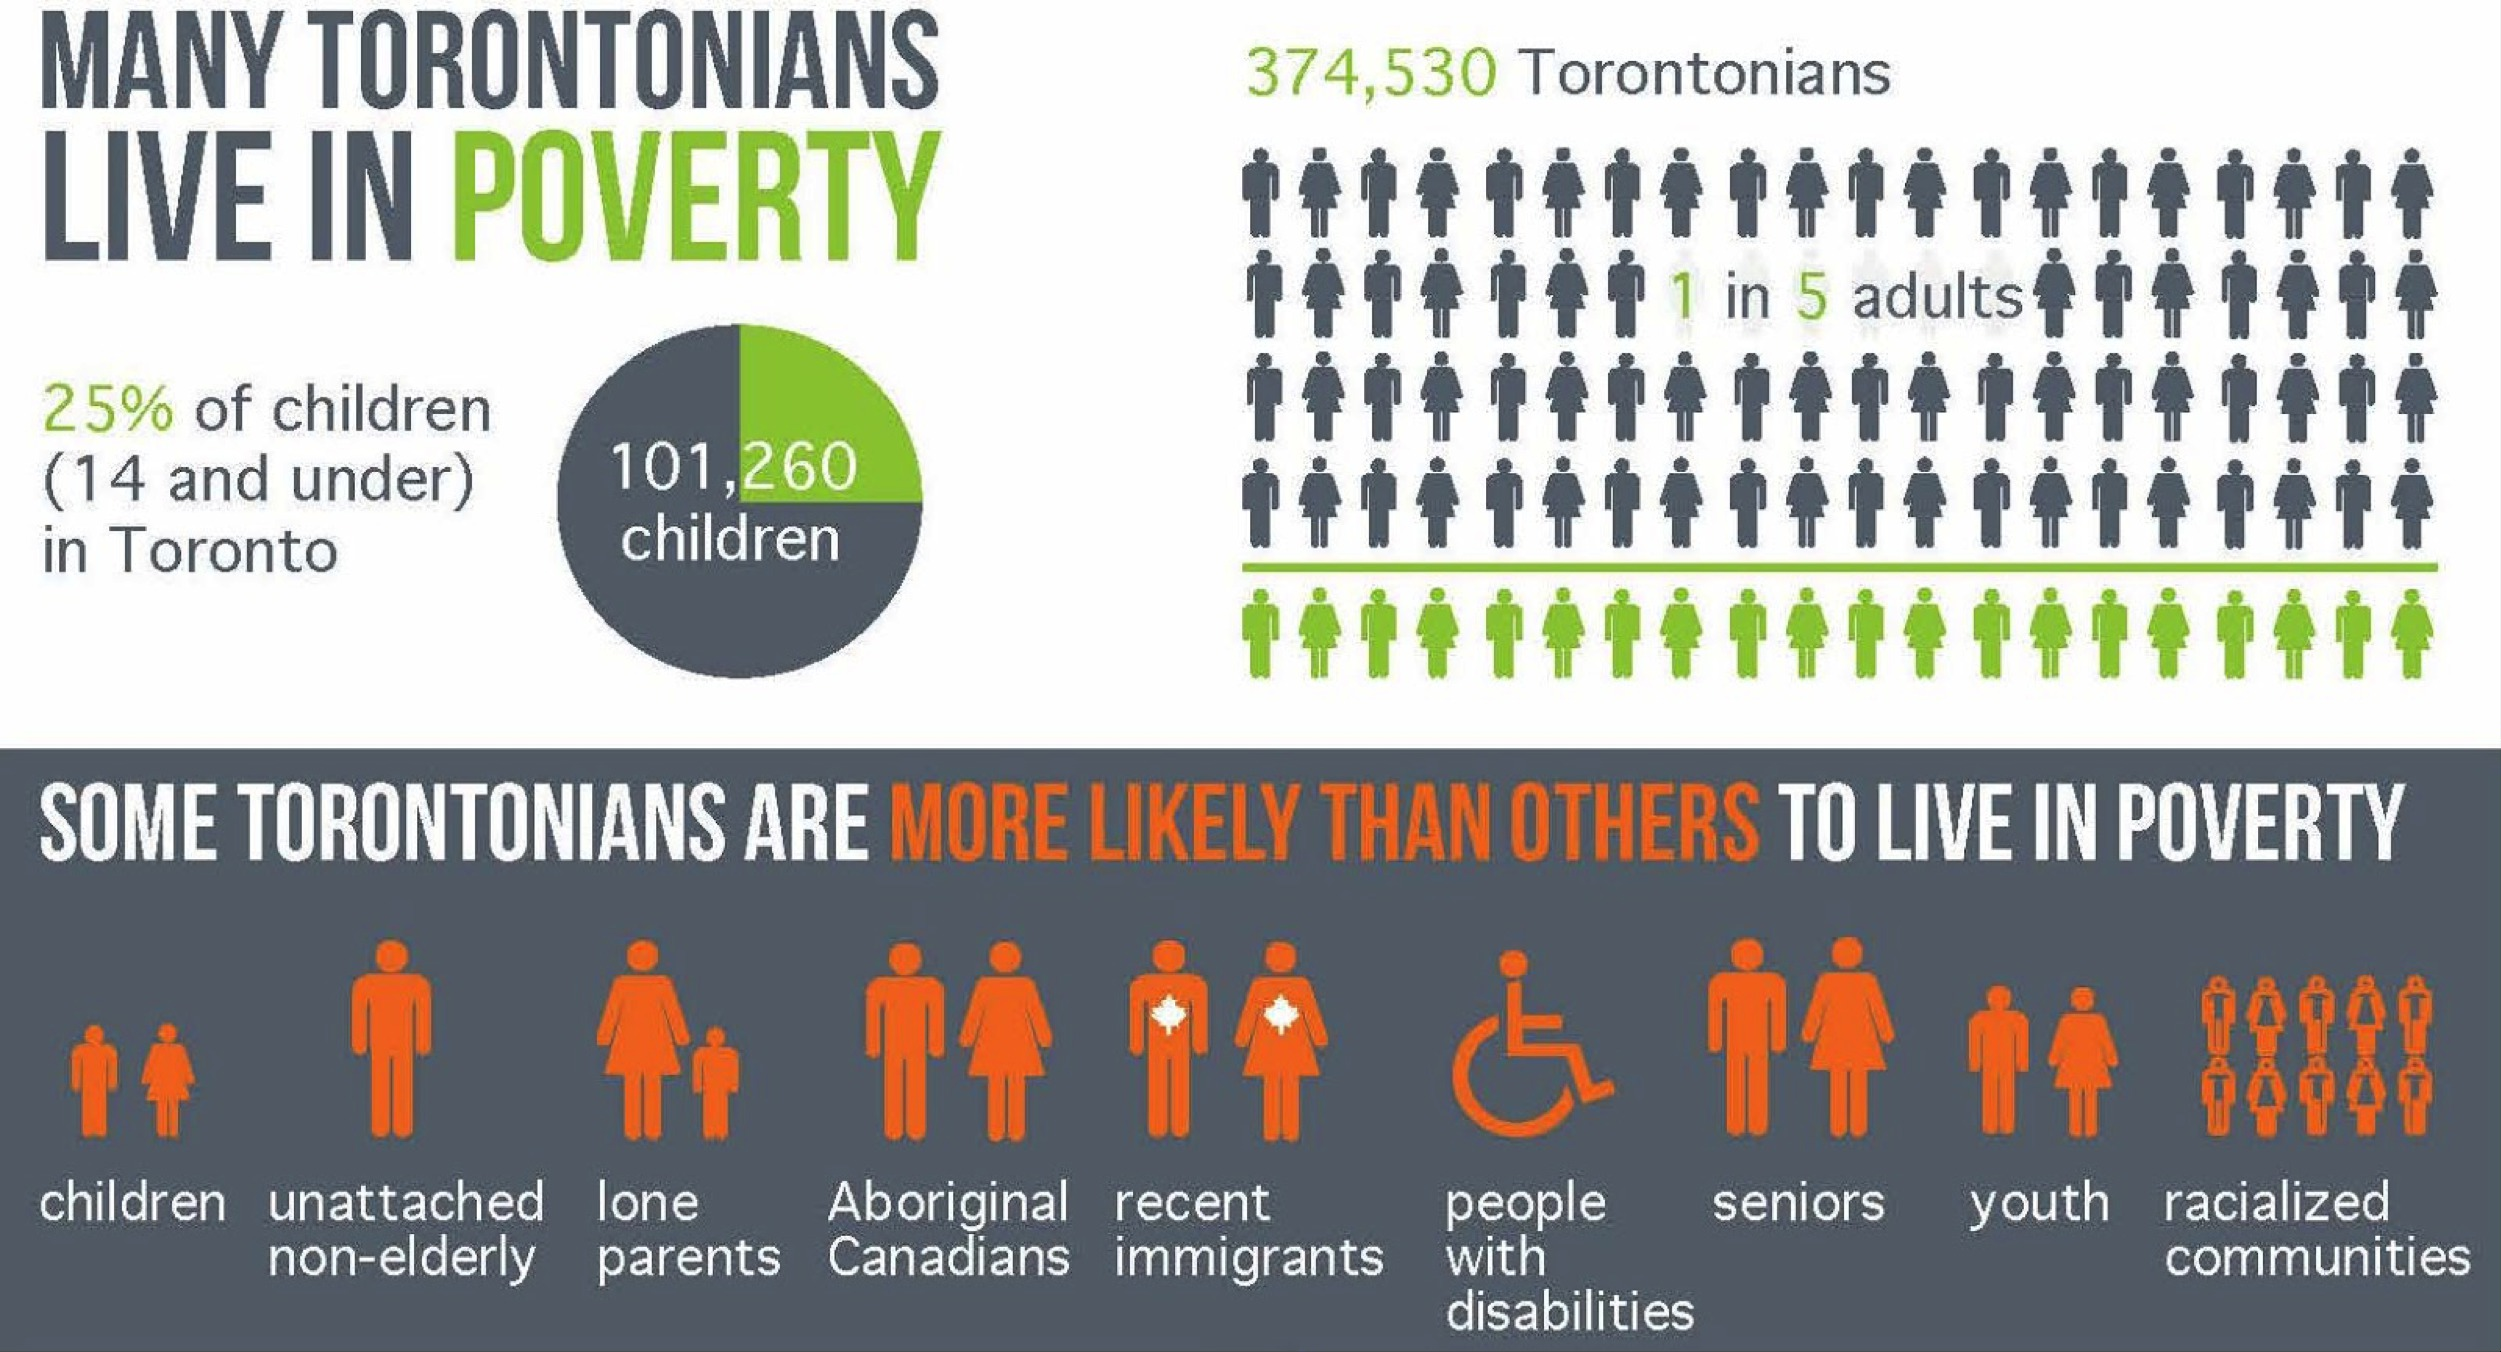 Many Torontonians live in poverty